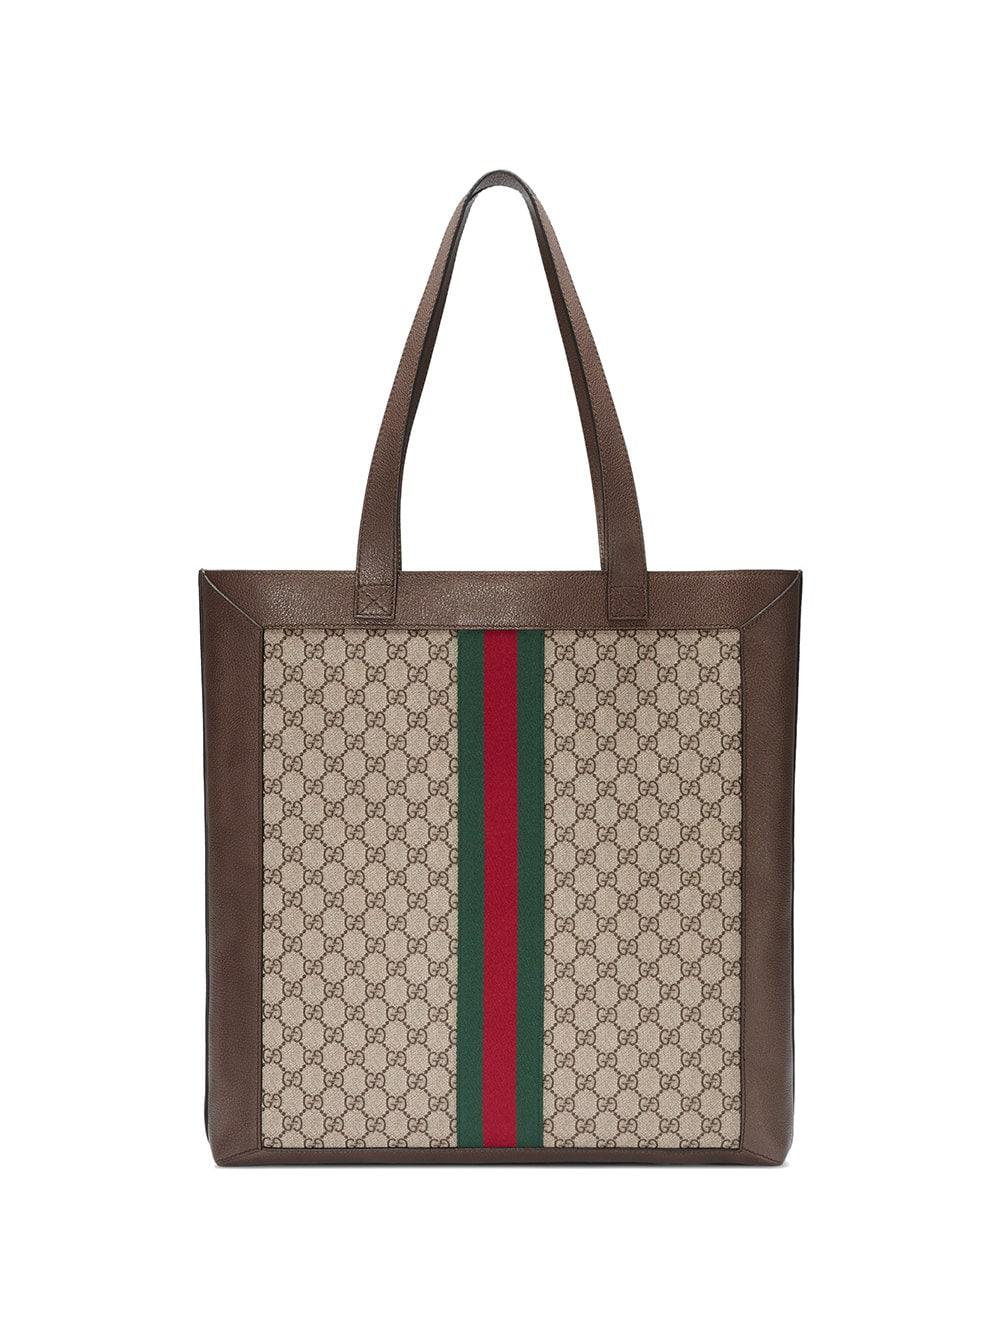 fb75d0c7e1b27f Gucci - Brown Ophidia Soft GG Supreme Large Tote - Lyst. View fullscreen